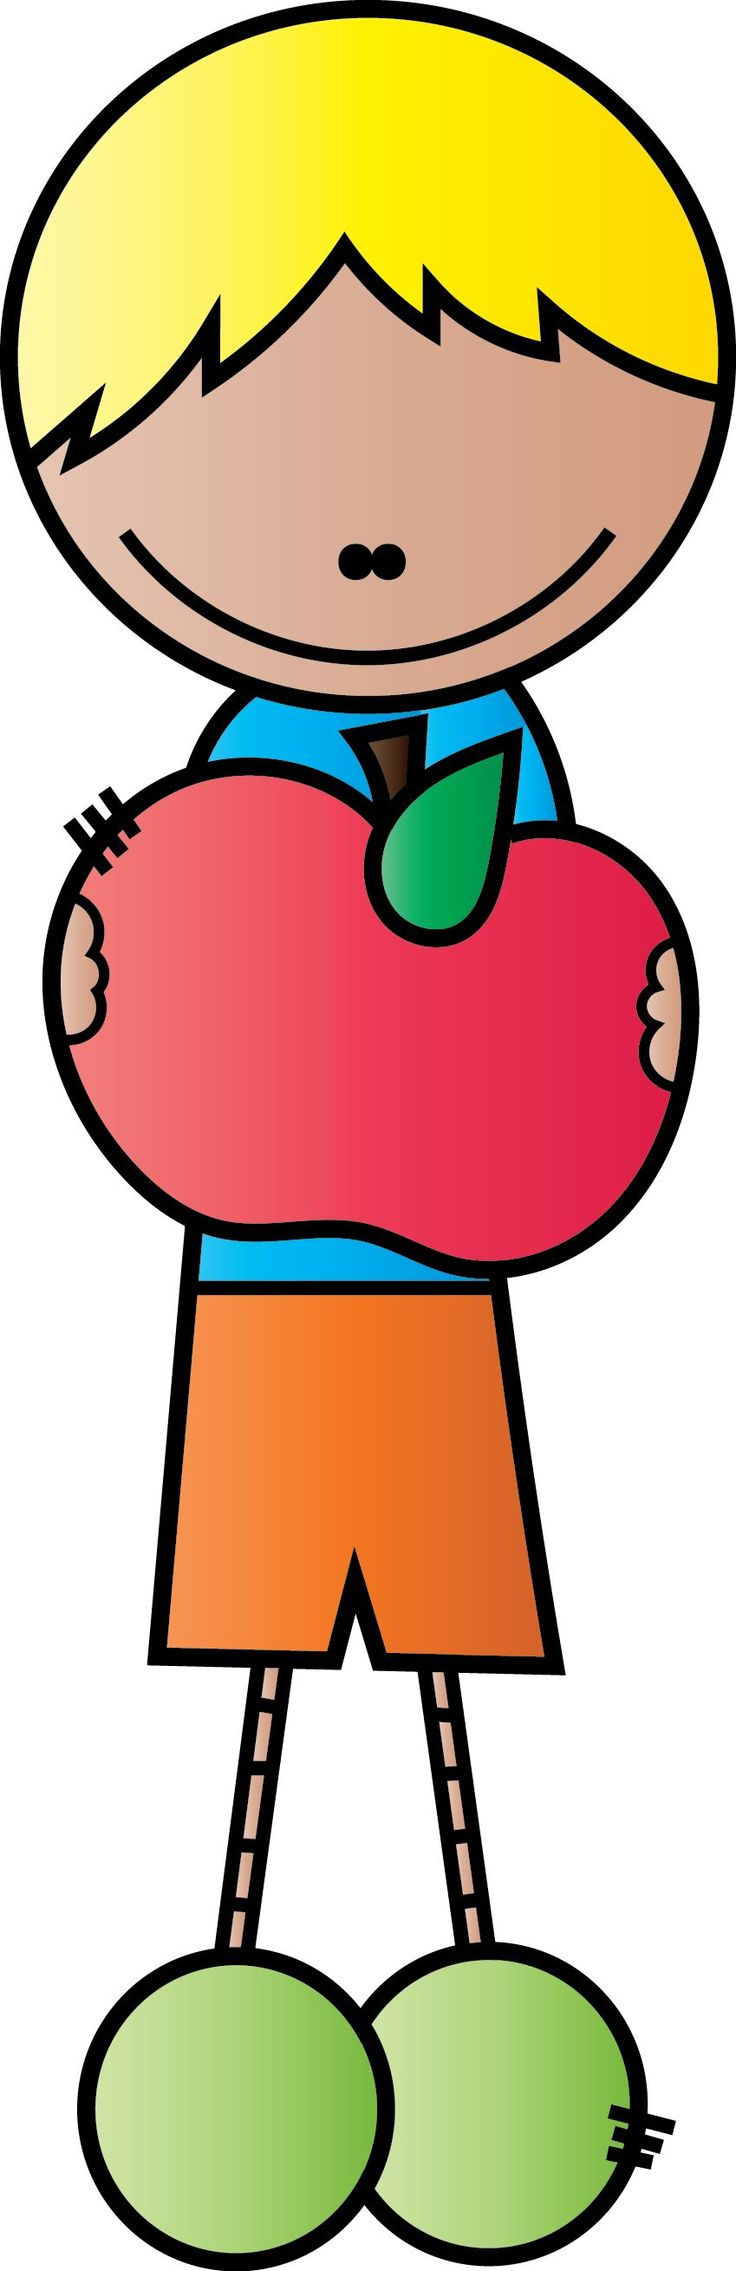 736x2271 623 Best A Is For Apples Images On Apple, Apples